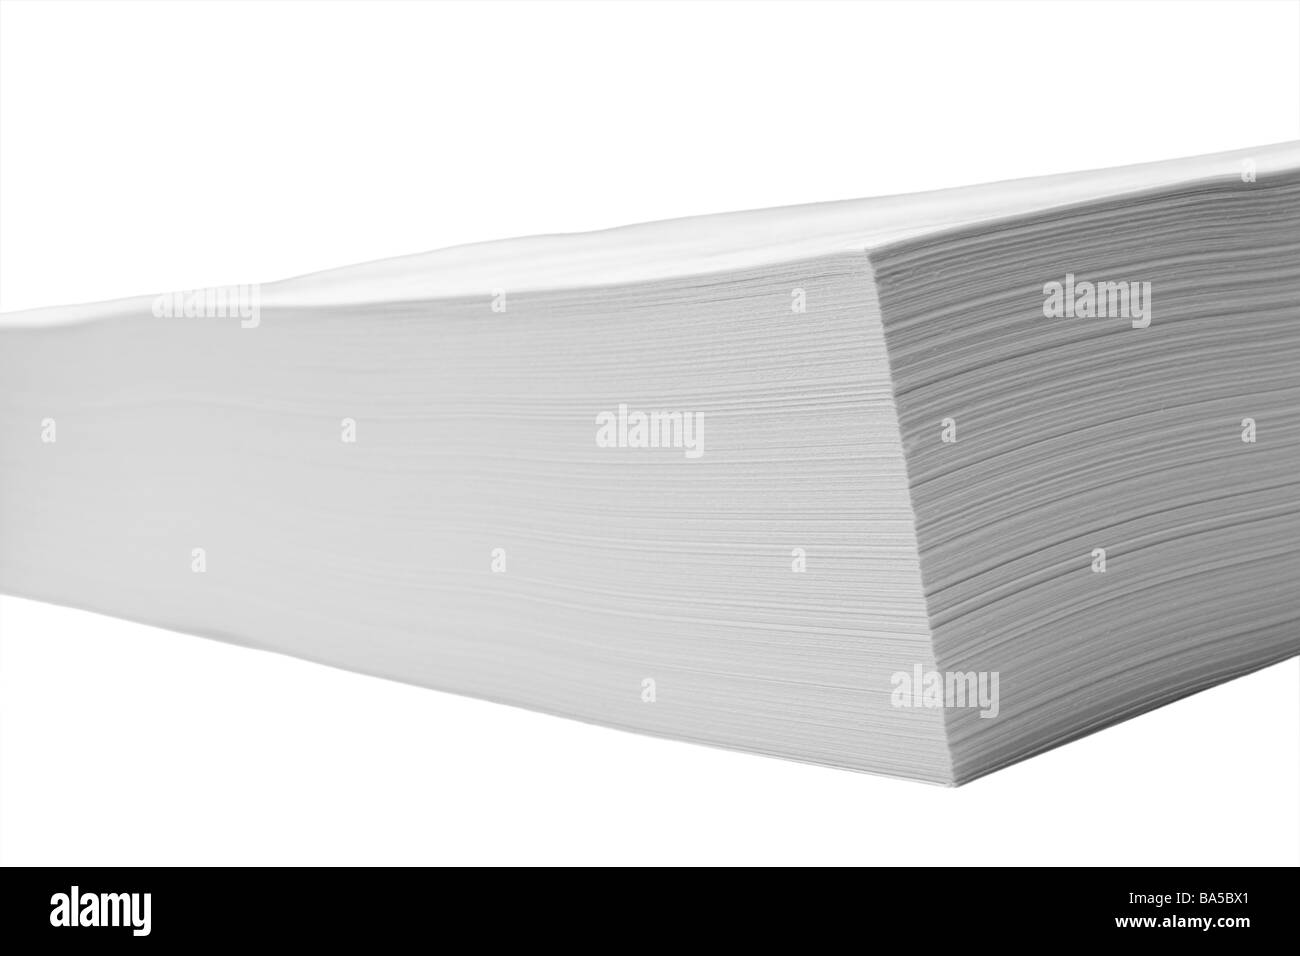 Close-up corner edge view of ream, stack of letter size white paper, black and white, selective focus, isolated - Stock Image